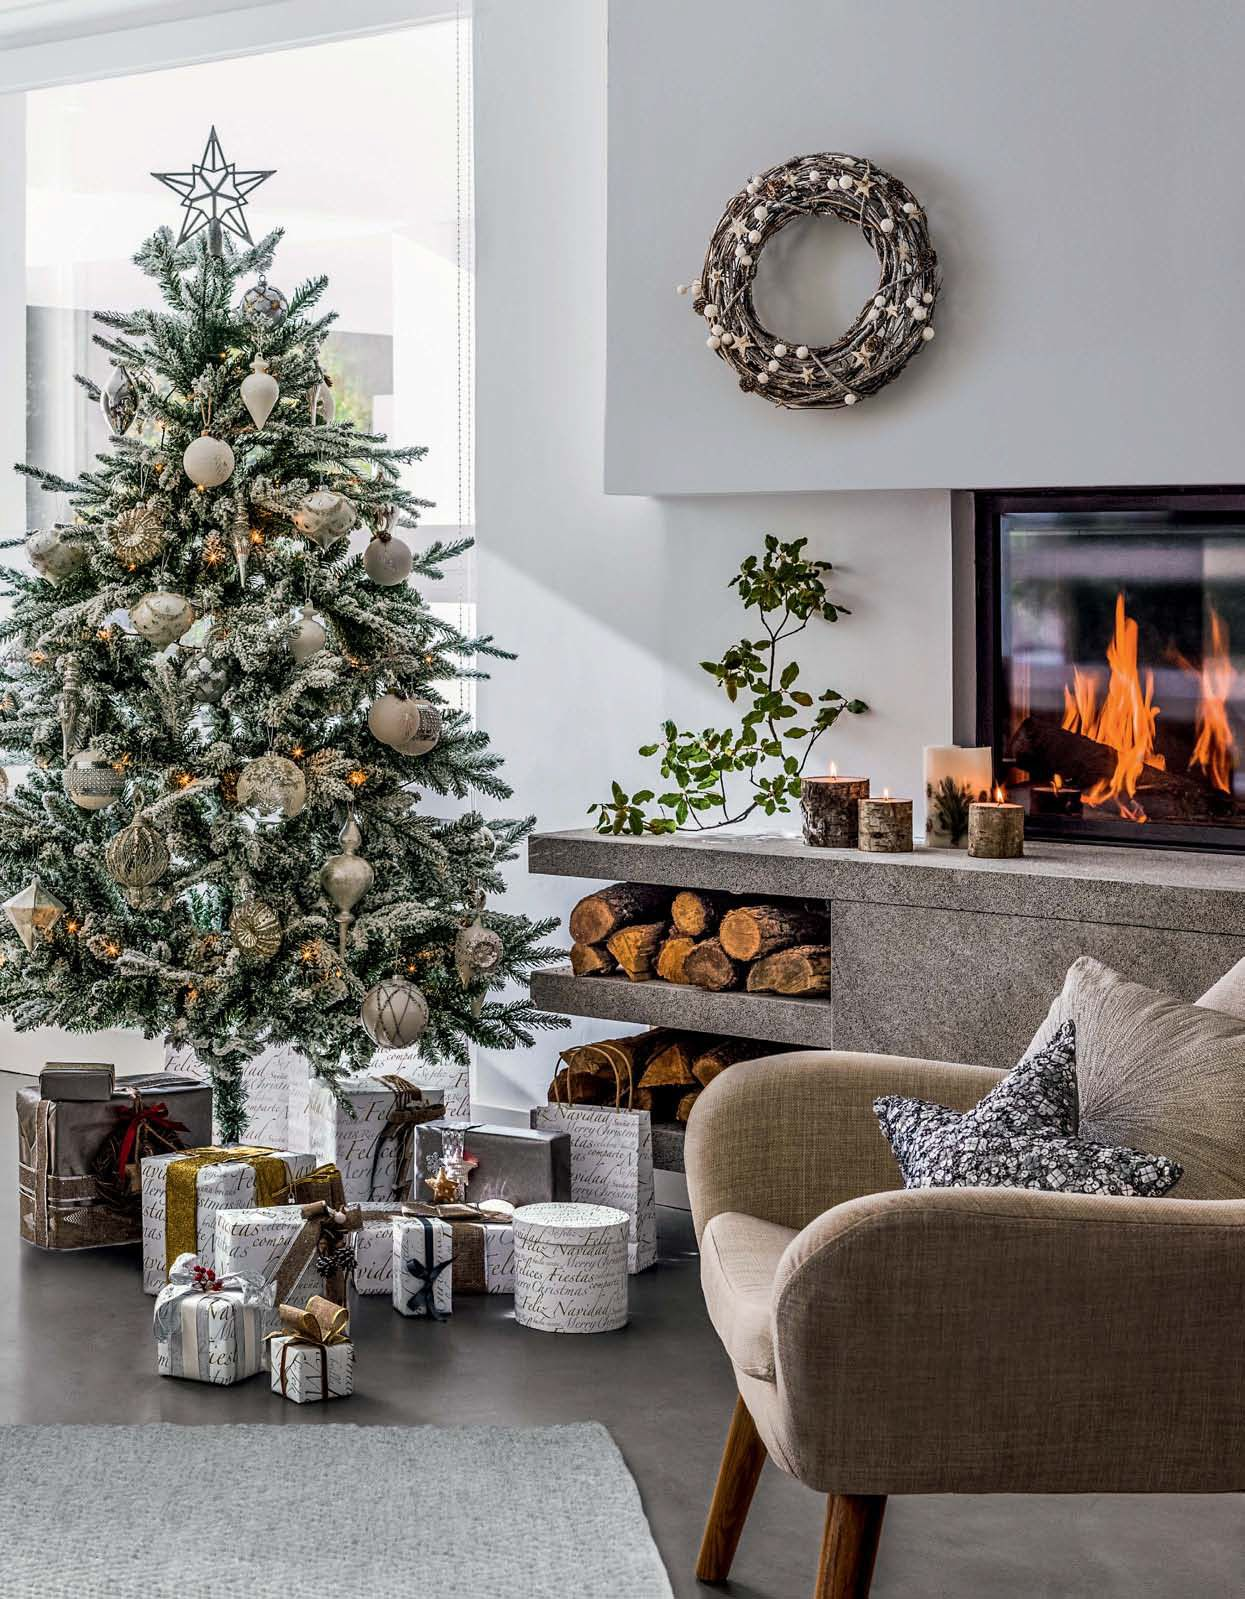 Decorar Salon Navideno.20 Ideas Para Decorar Tu Casa En Navidad